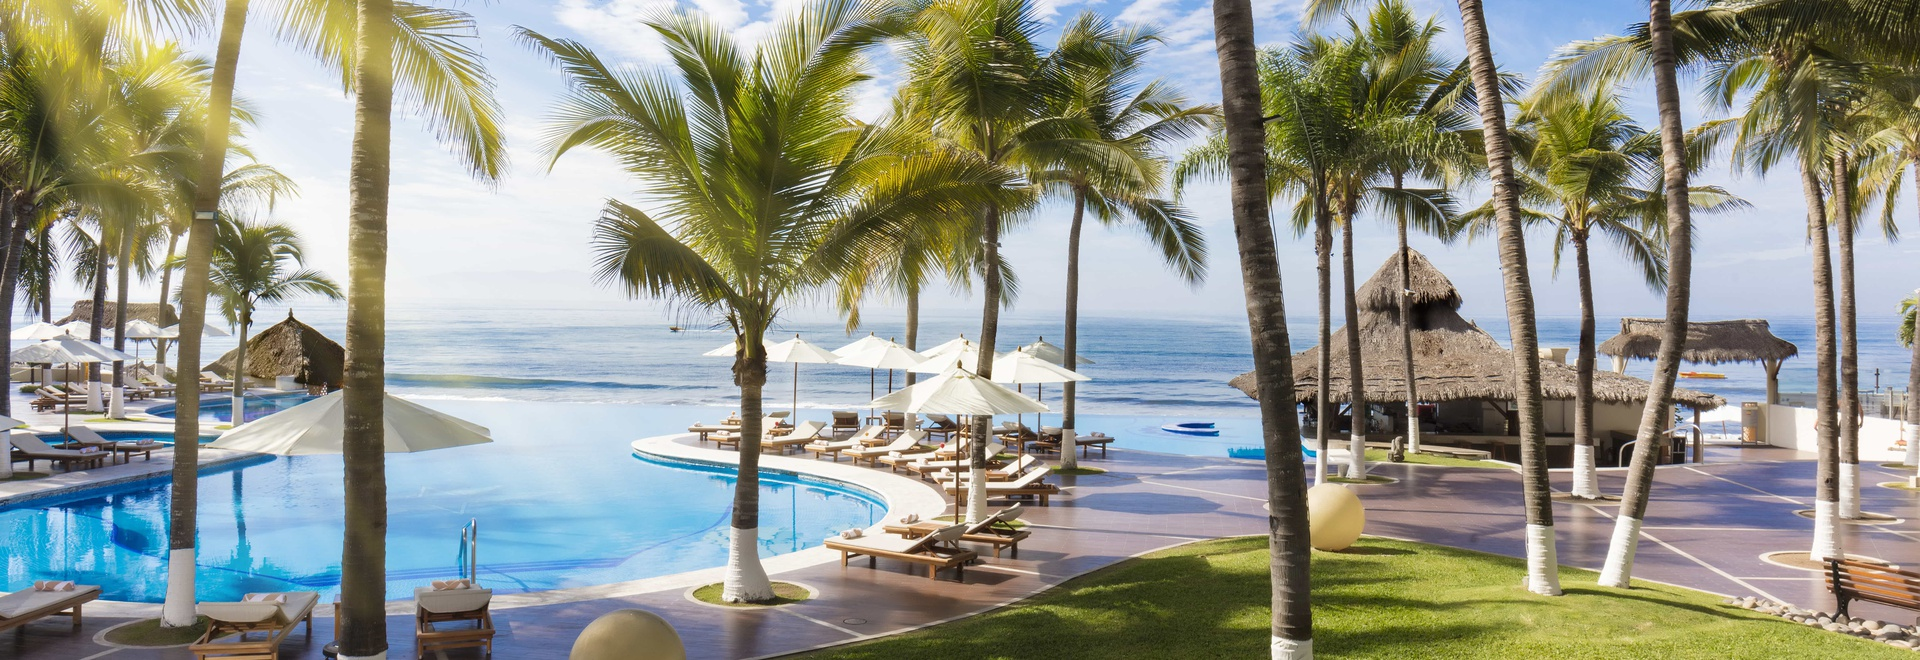 Krystal Grand Nuevo Vallarta Hotel - Plan a stay that is tailor-made to your preferences